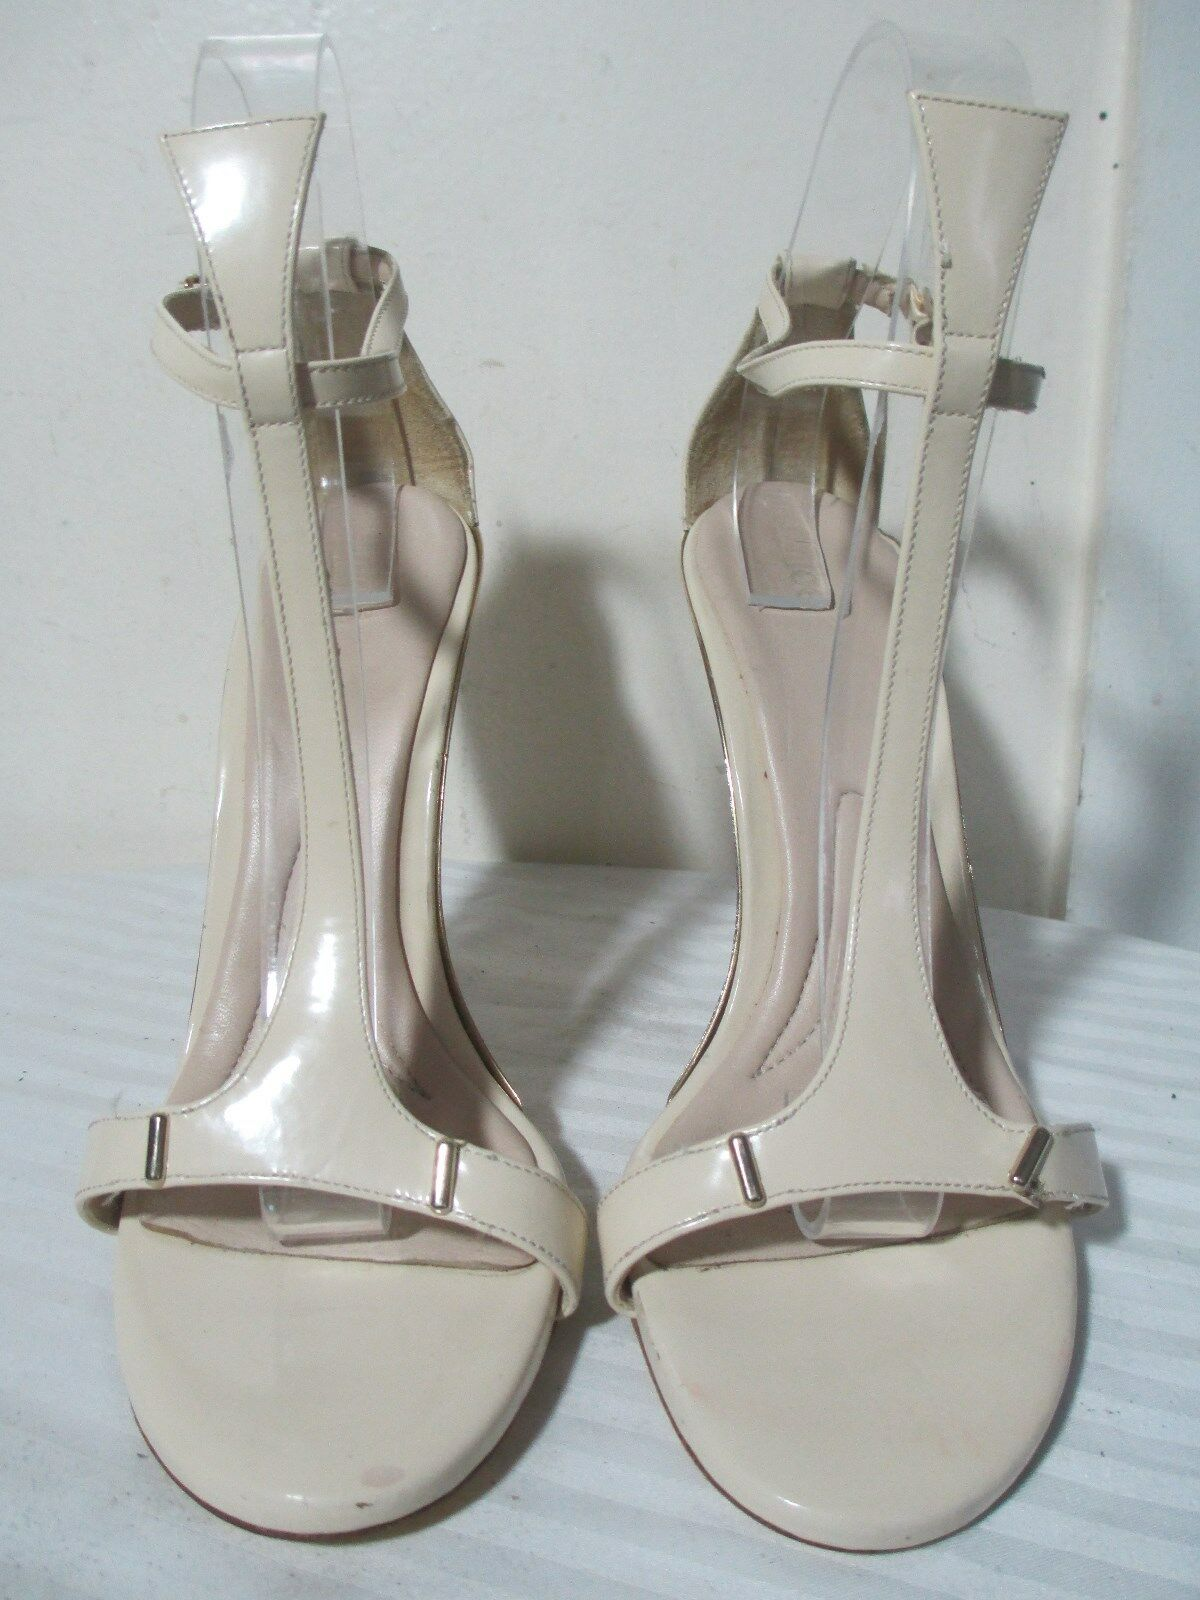 CHLOE BEIGE PATENT LEATHER HEELS HEELS HEELS FASHION T SANDALS SZ 40 US 9.5 MADE IN ITALY 7811f5